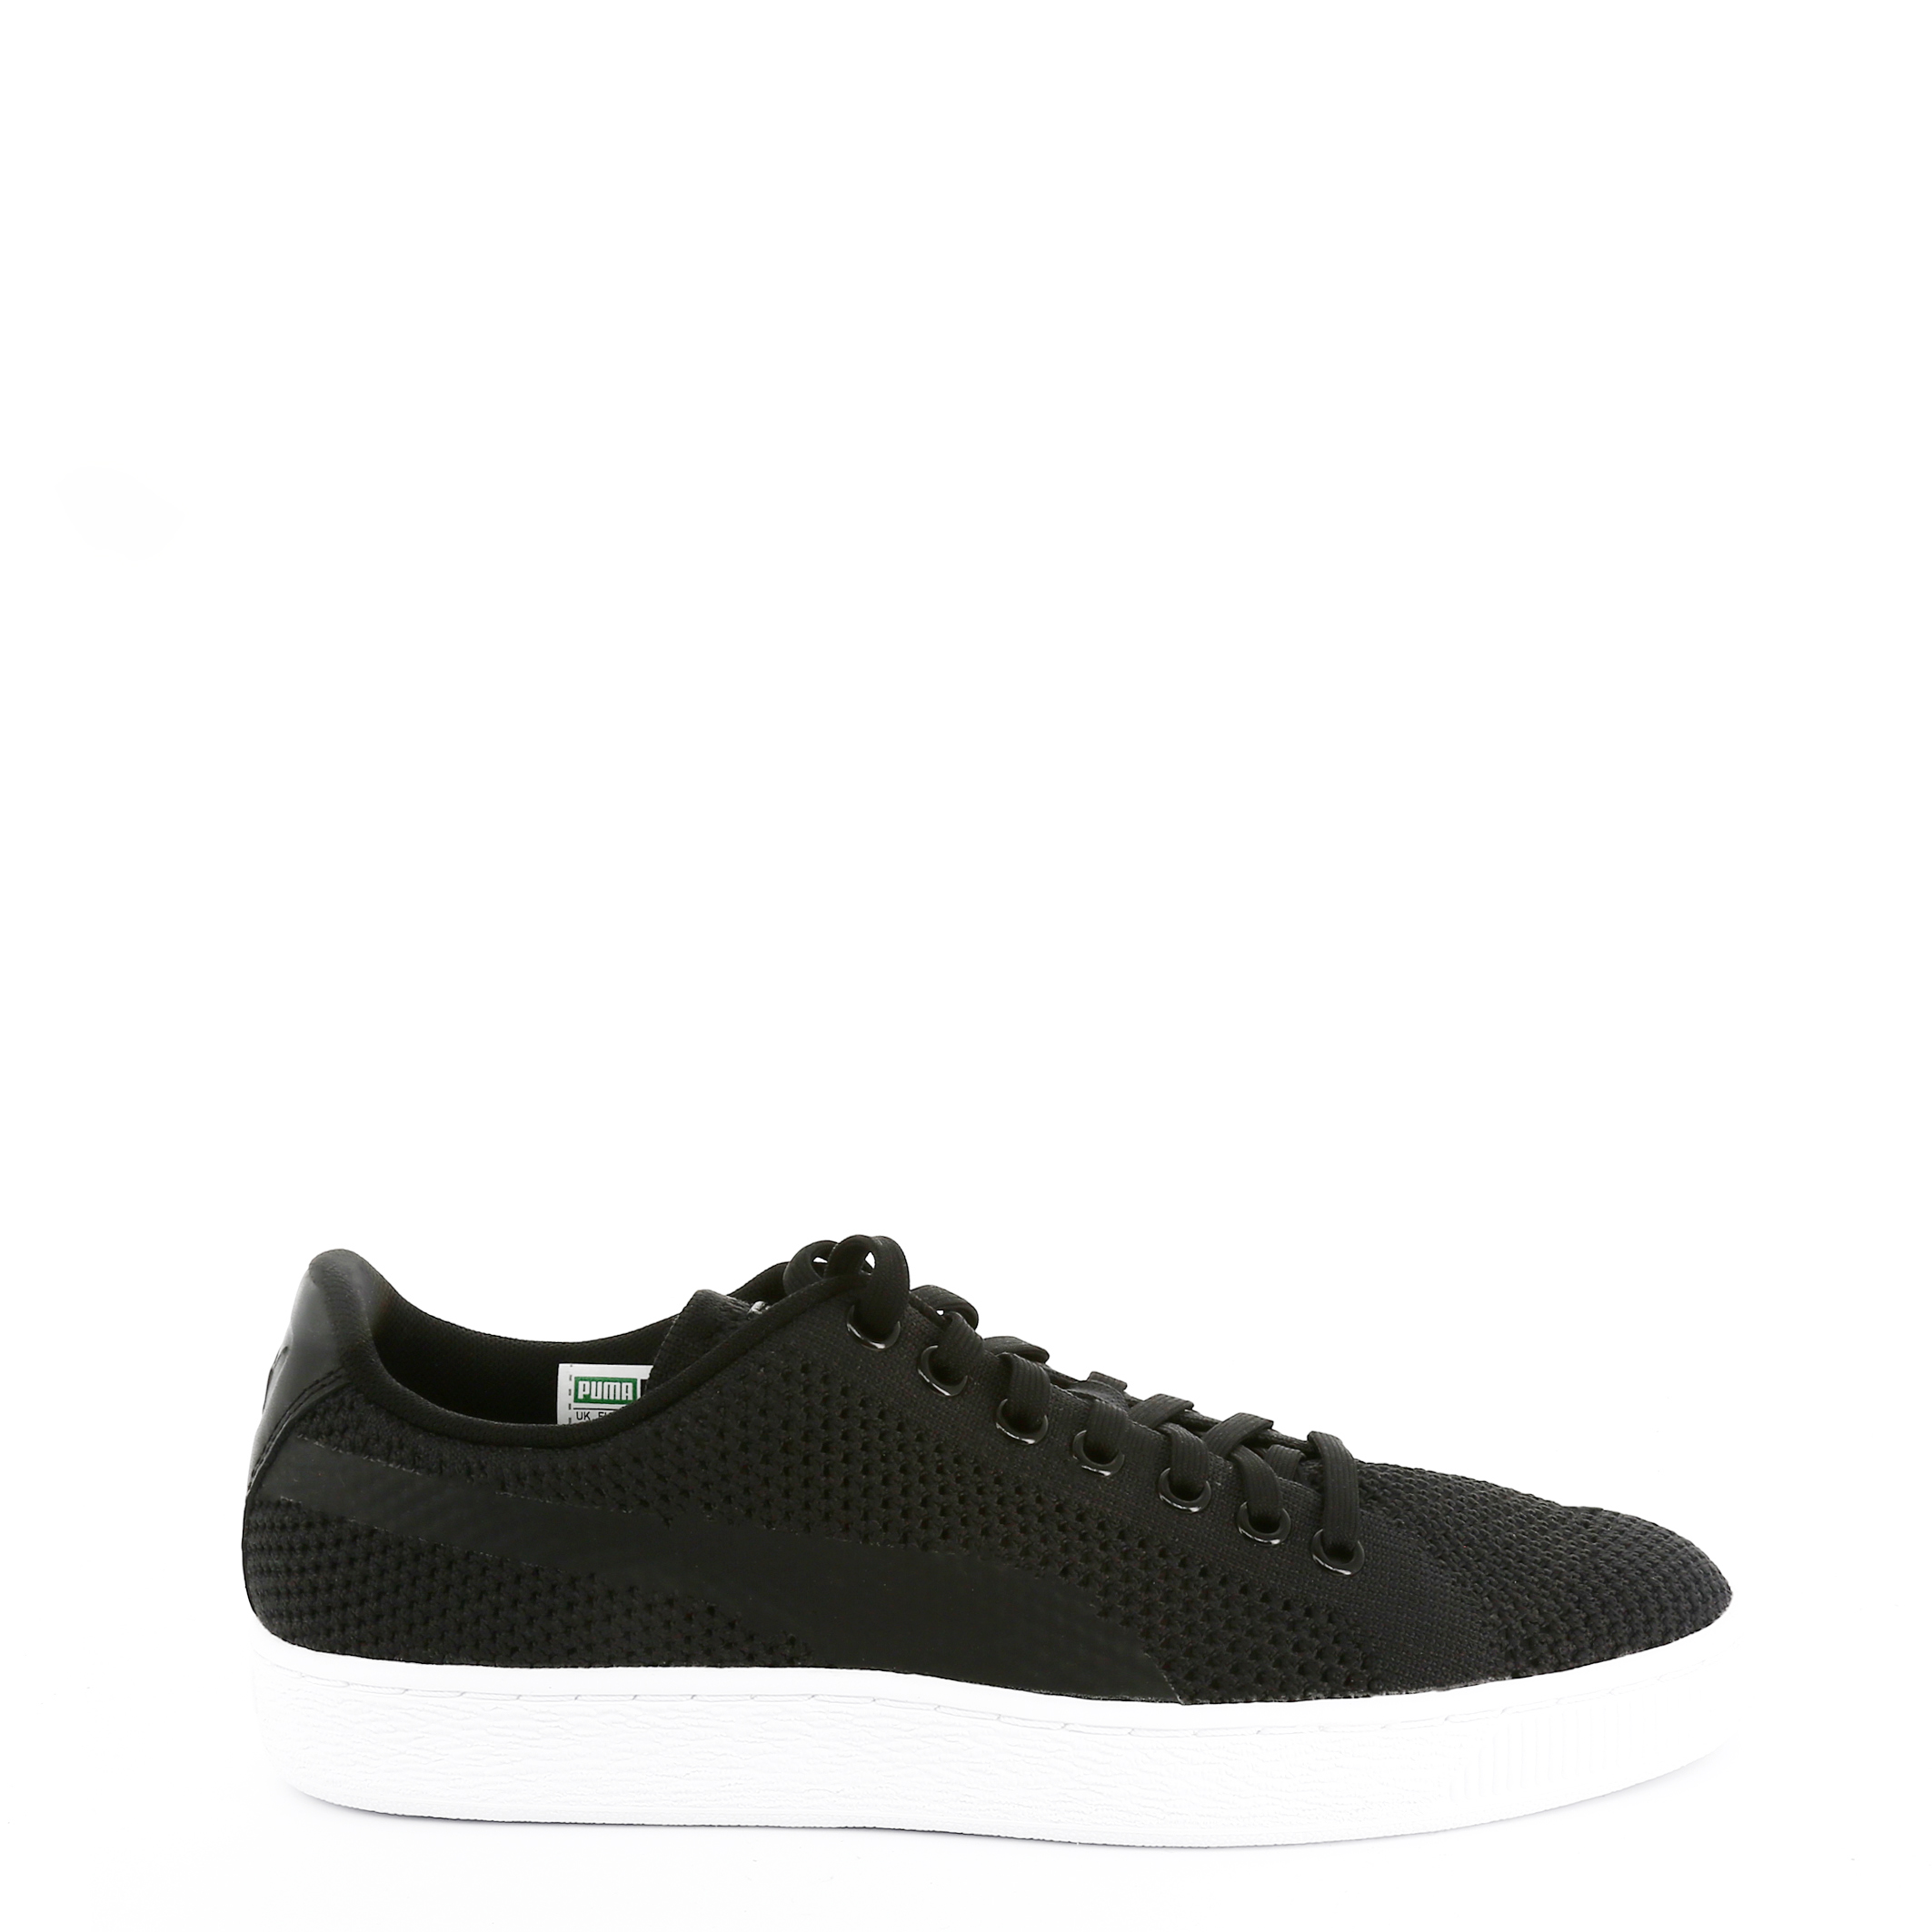 Puma Unisex Sneakers In Black UK 7.5